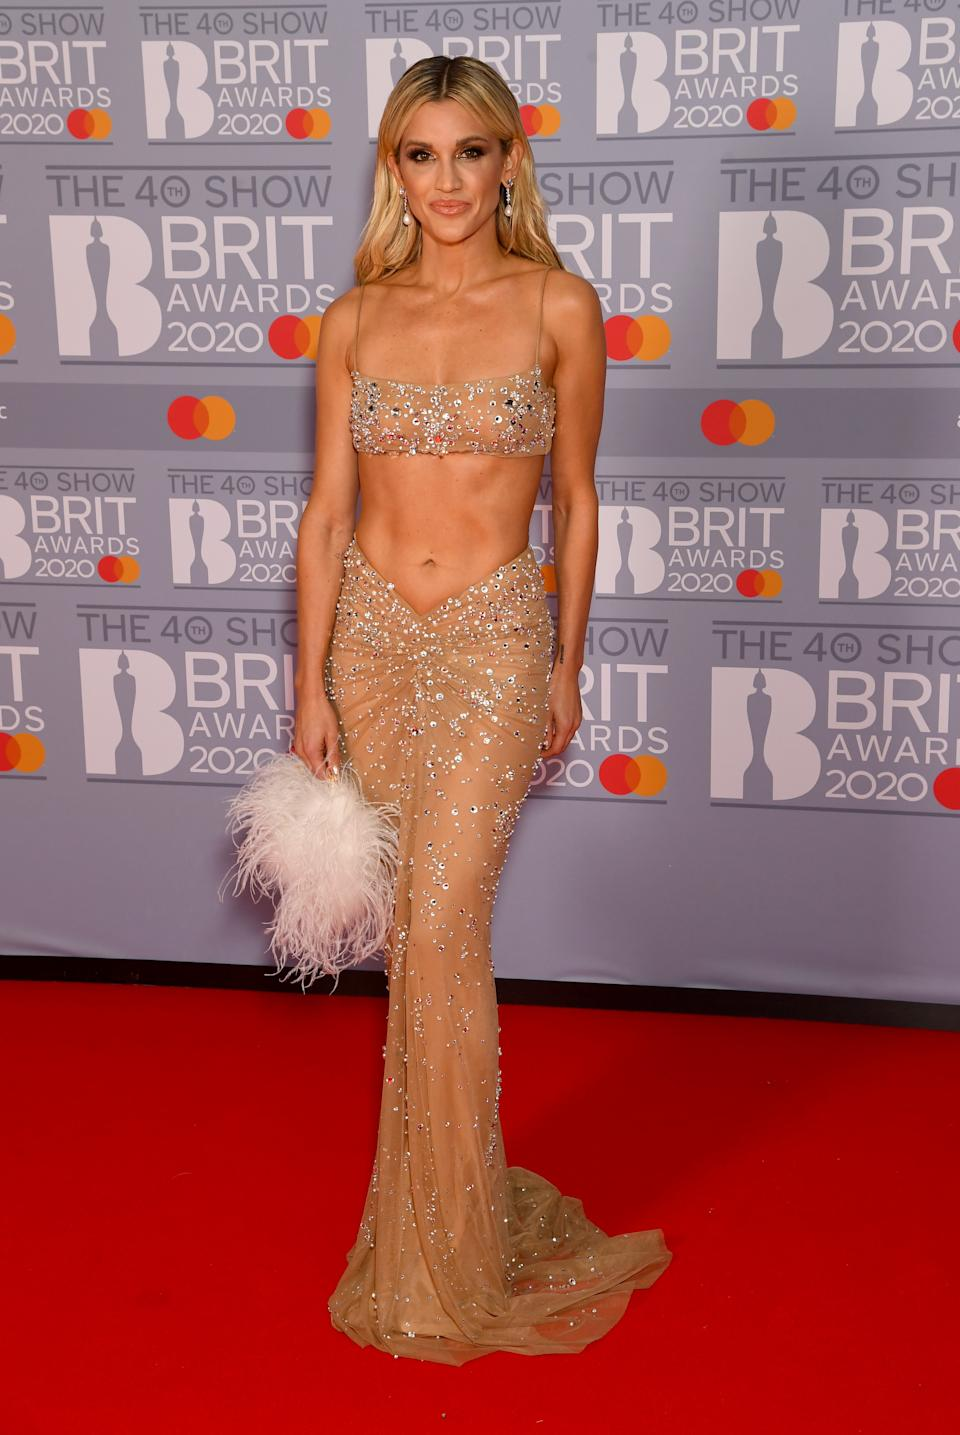 Ashley Roberts wears an ab-baring gown at The BRIT Awards 2020 at The O2 Arena on February 18, 2020 in London, England